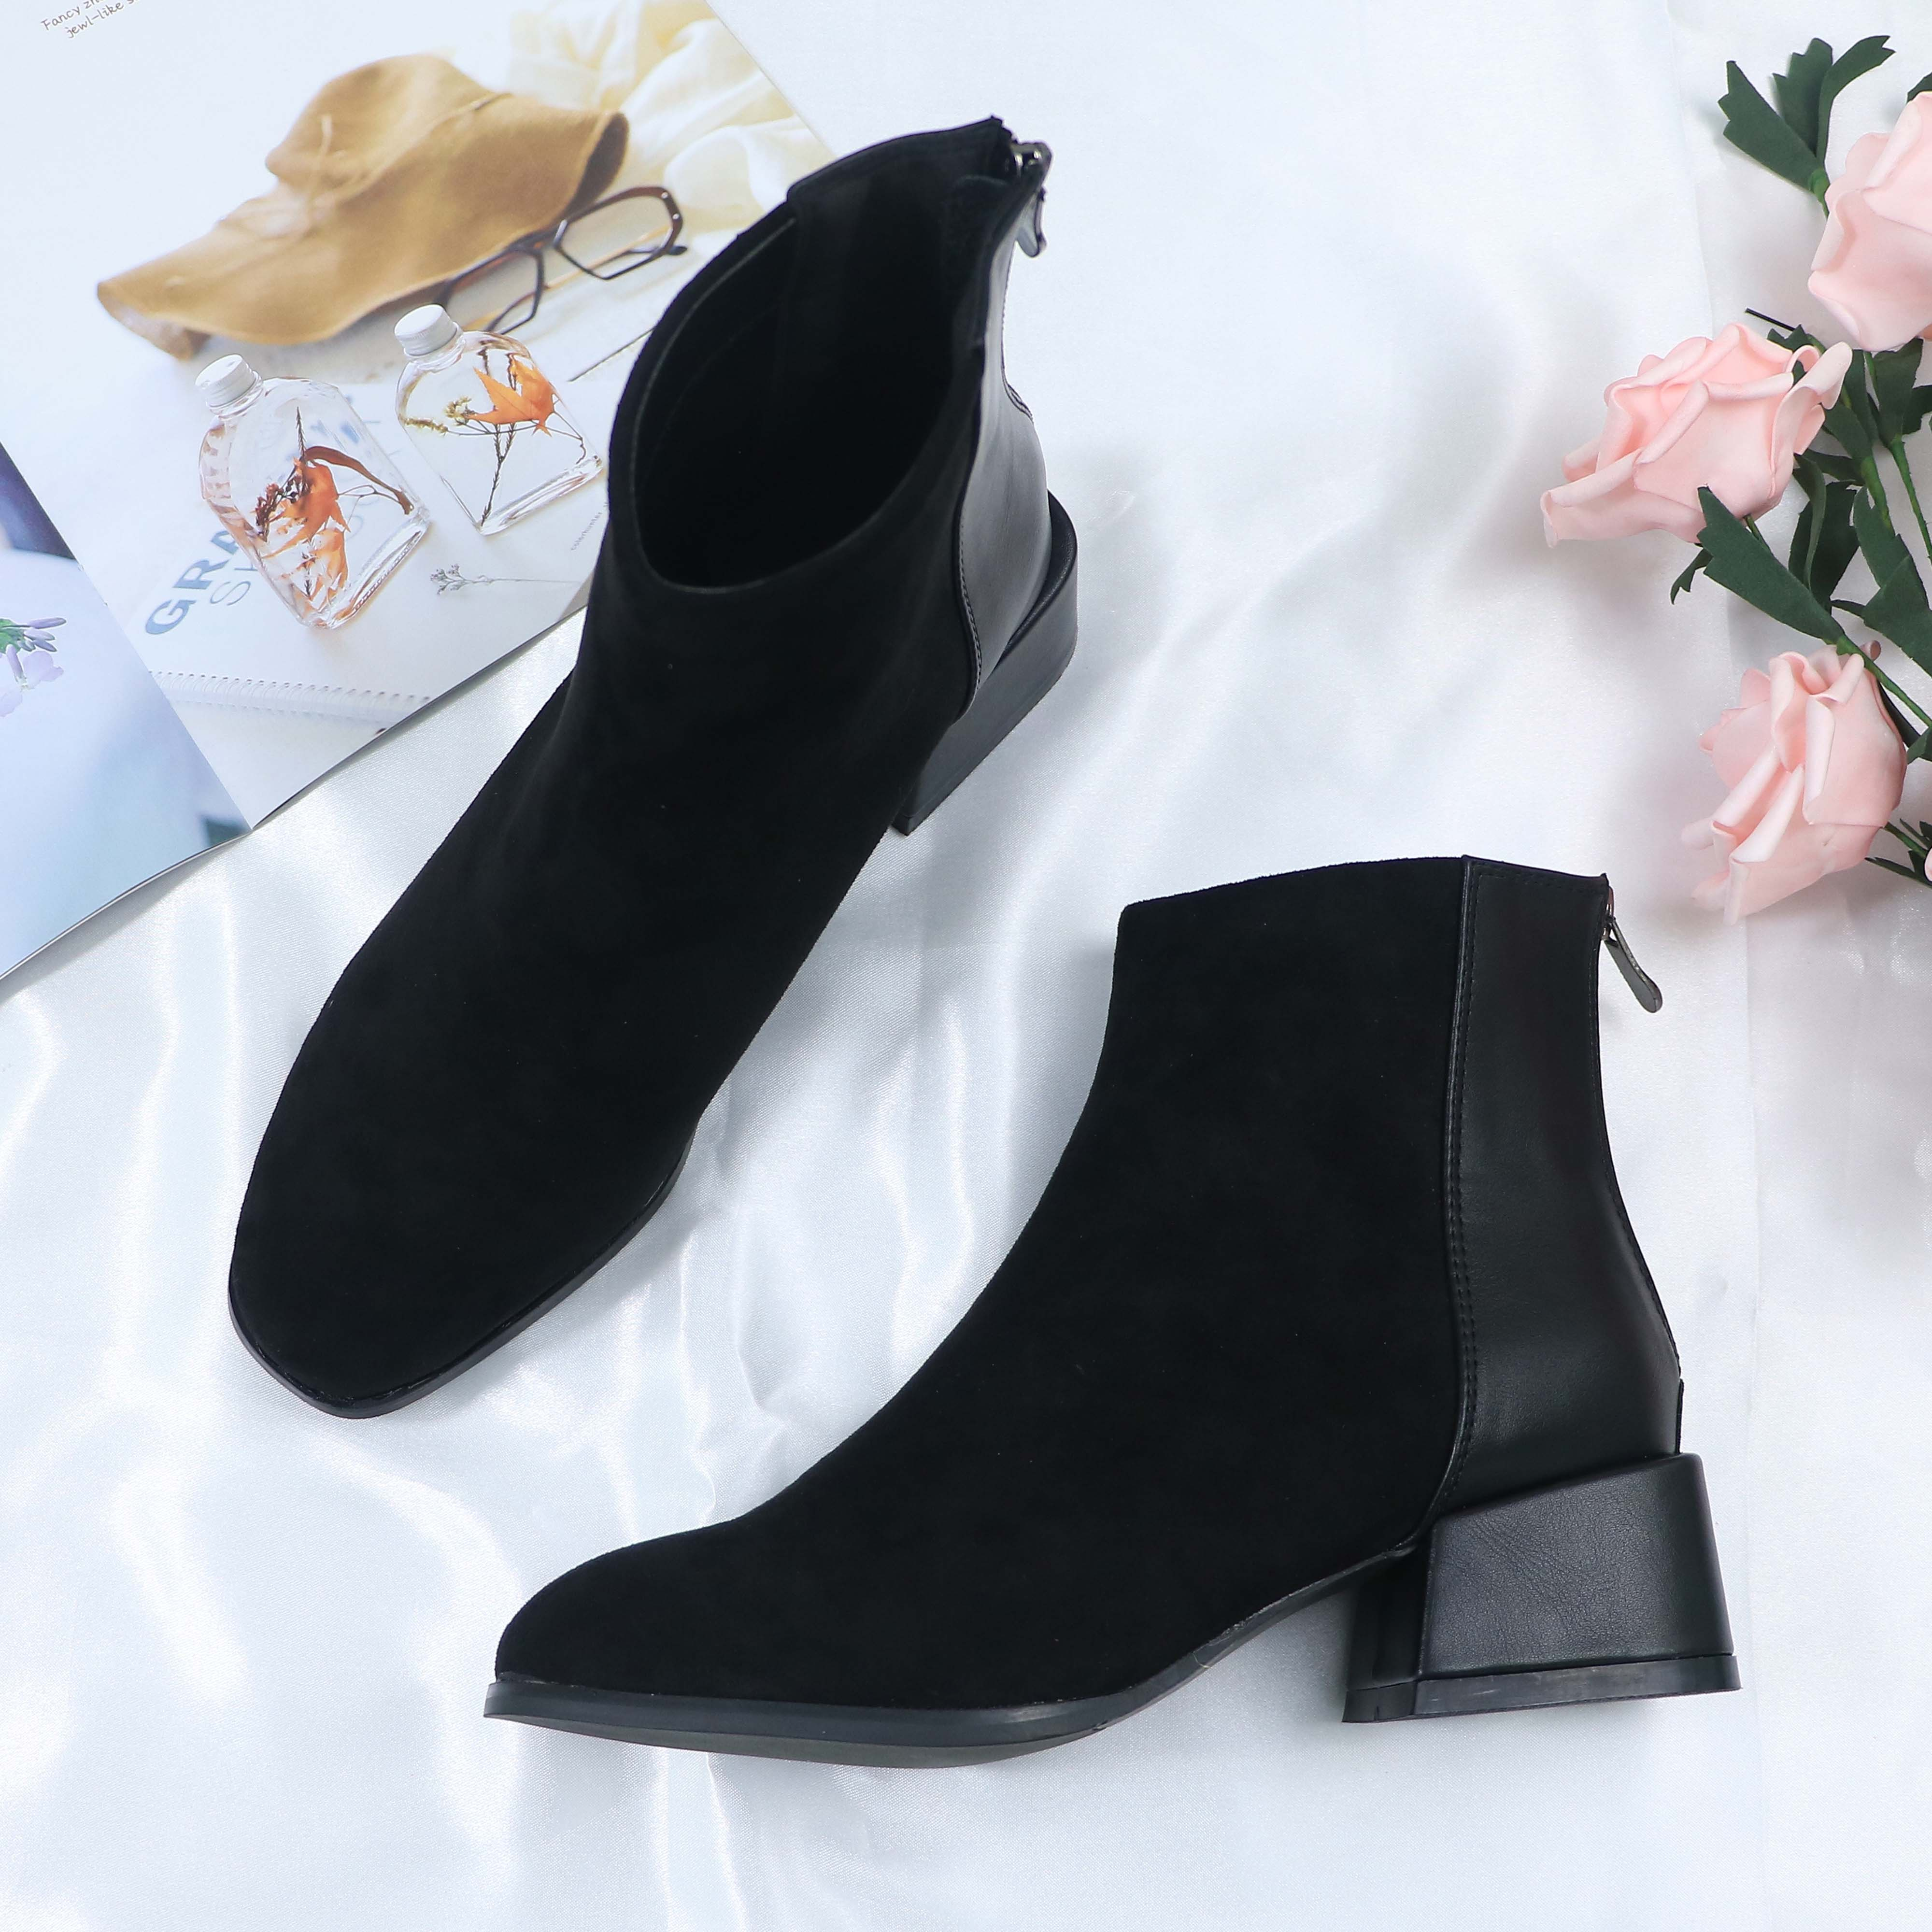 Roni Bouker Faux Suede Ankle Boots Women Chunky Heeled Plush Shoe Woman Chic Shoes Lady Brown Chocolate Boot ботинки женские